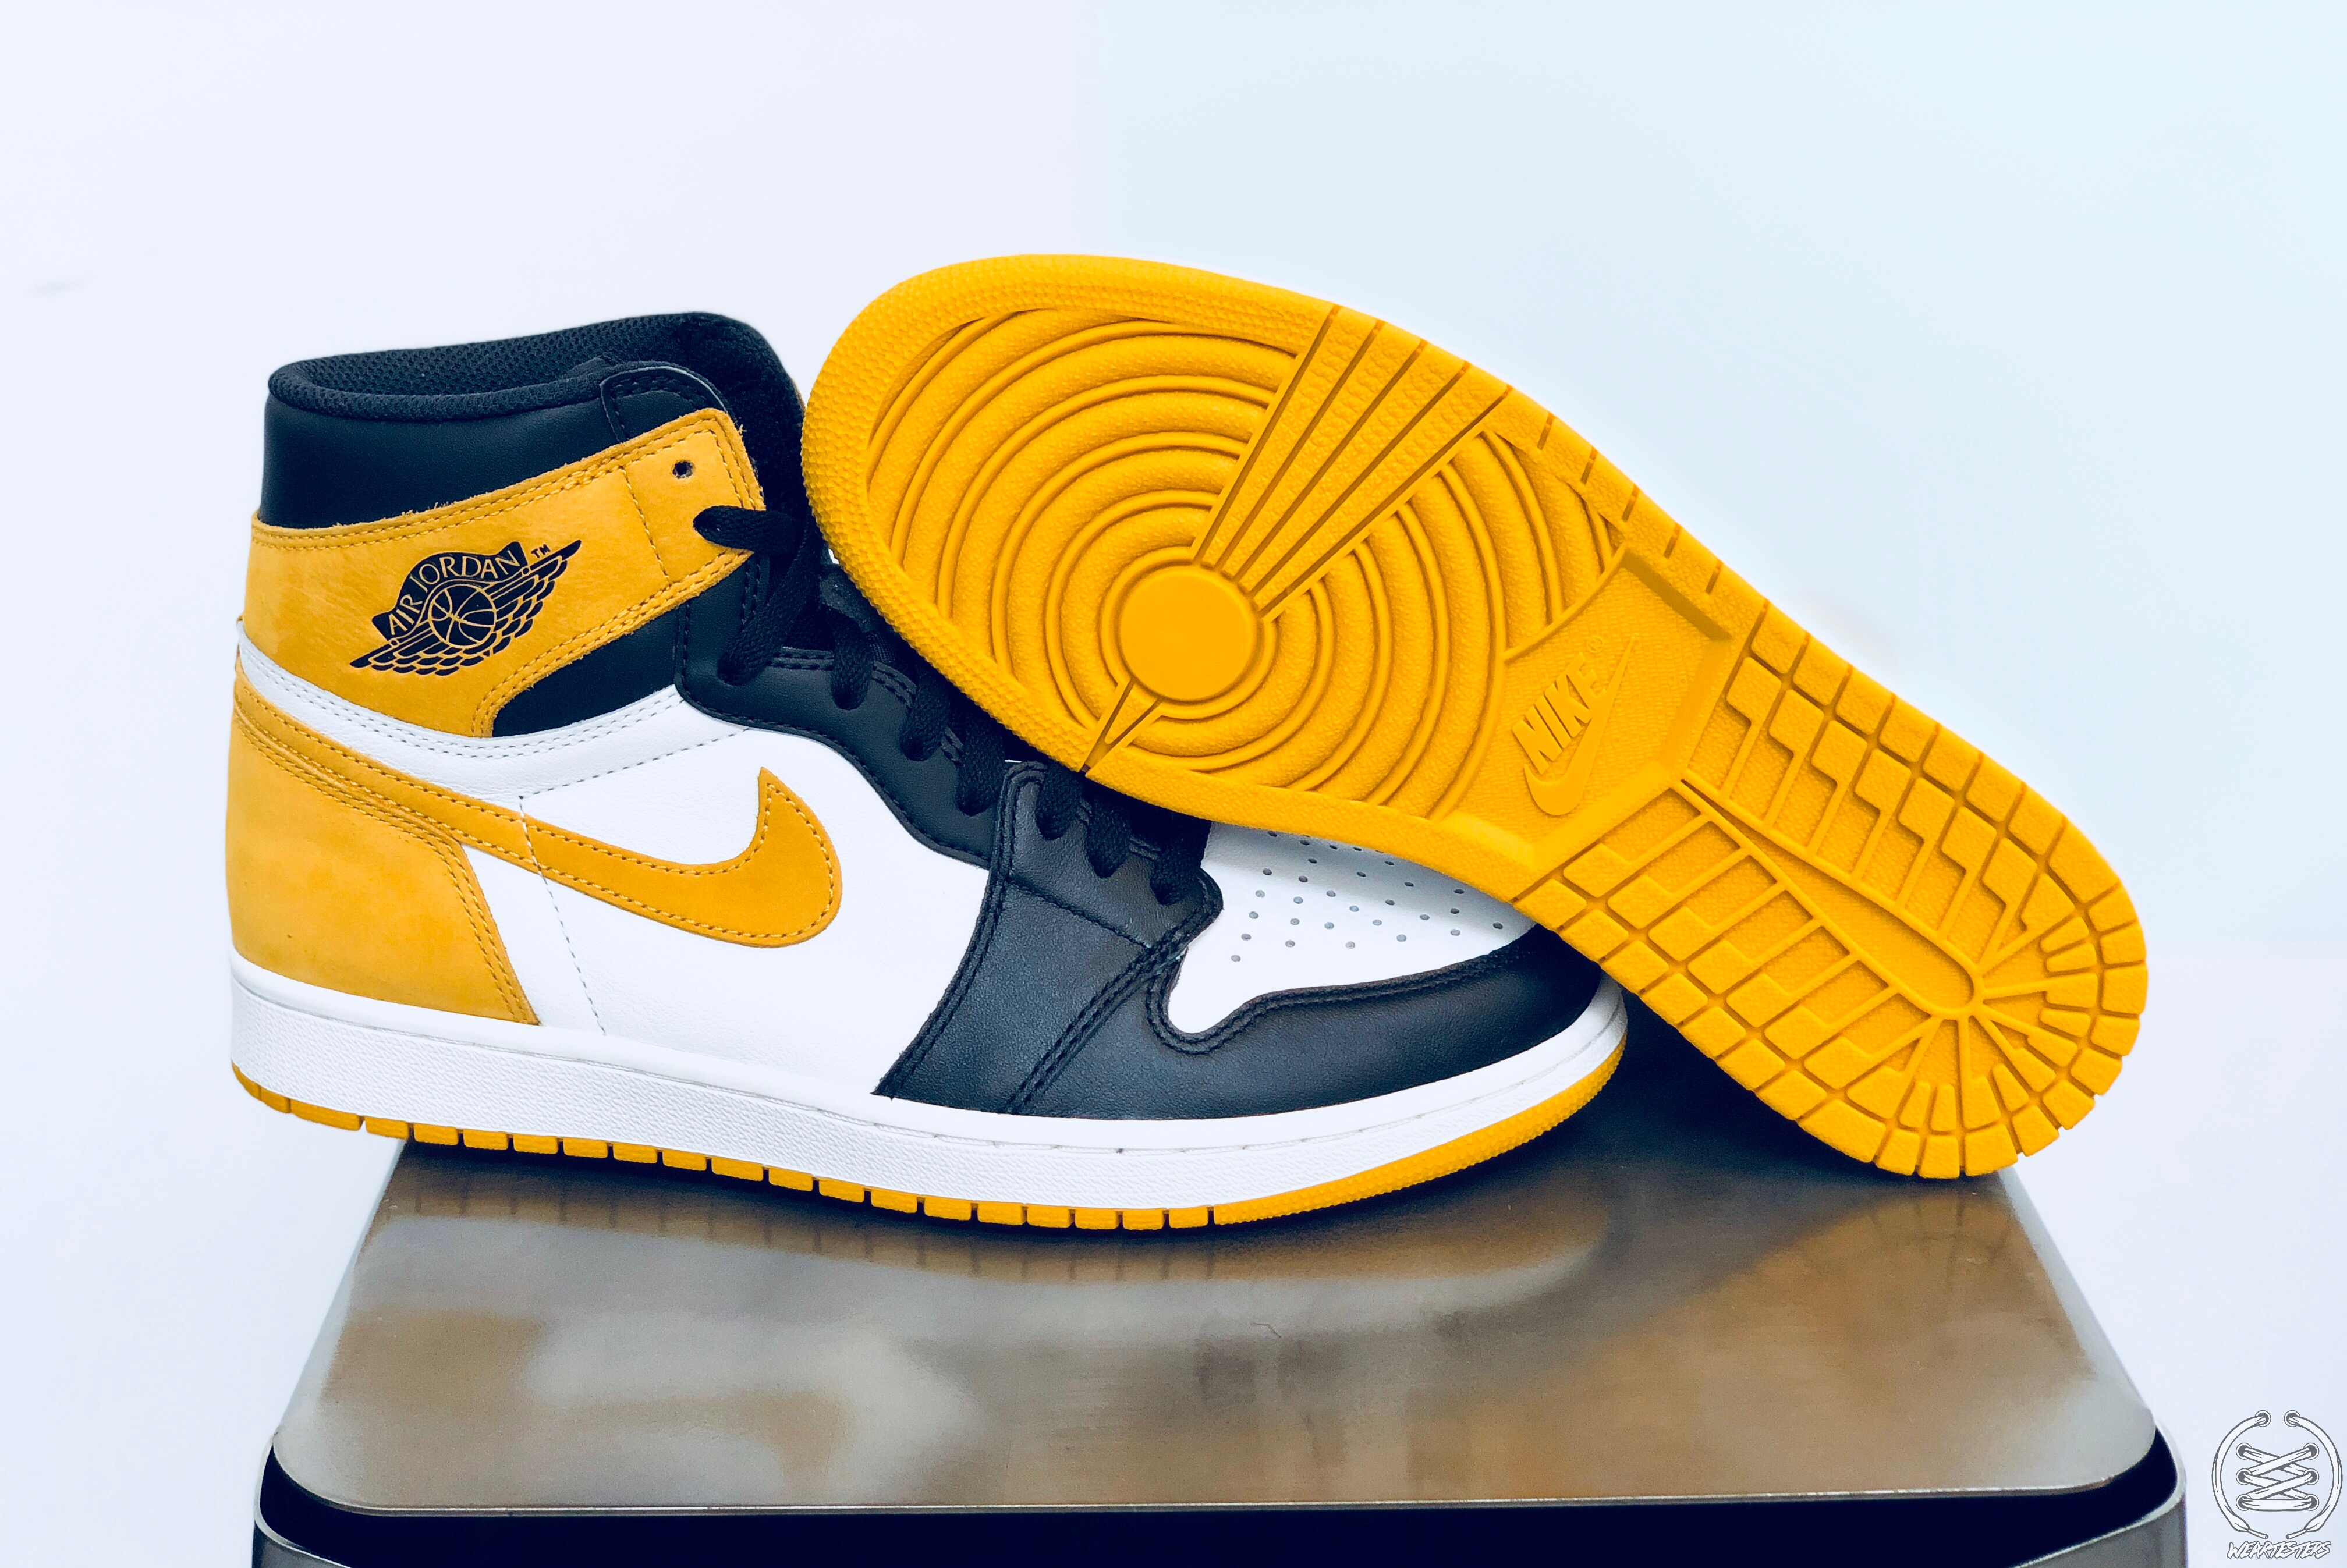 low priced 10b20 21b5e Air Jordan 1 Yellow Ochre Best Hand in the Game collection 1 ...